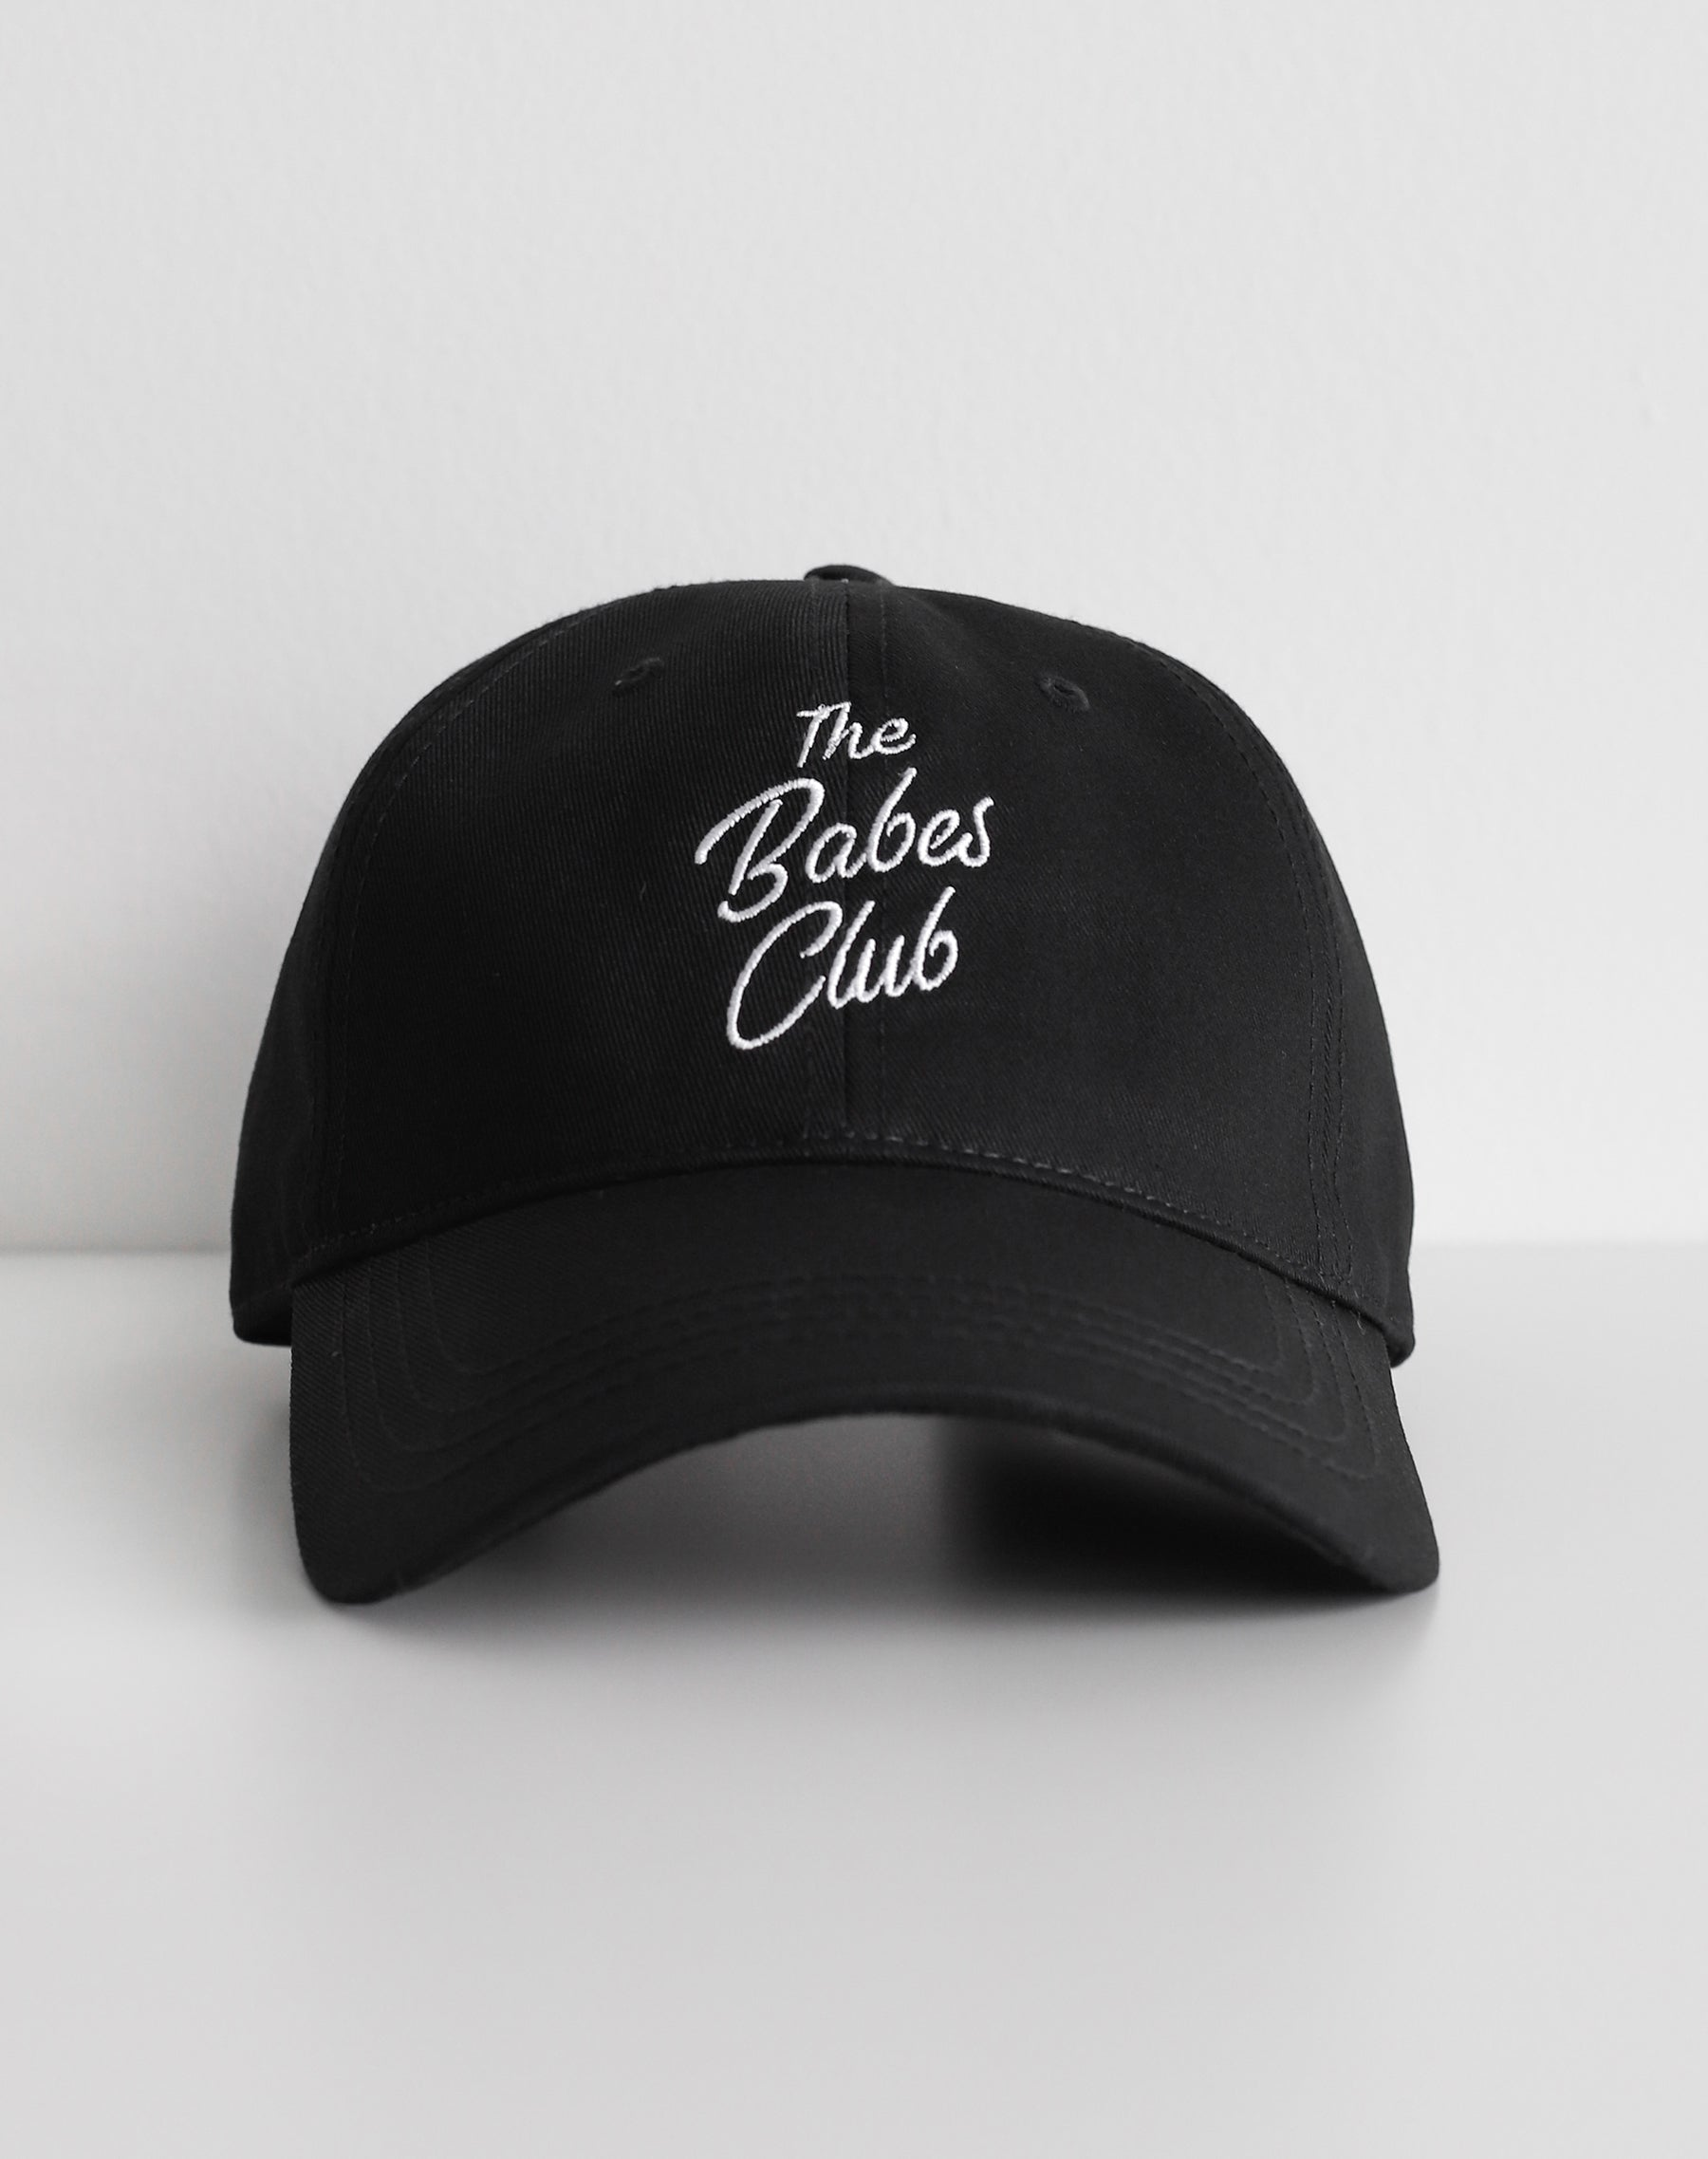 This is an image of the babes club baseball hat in black from Brunette the Label